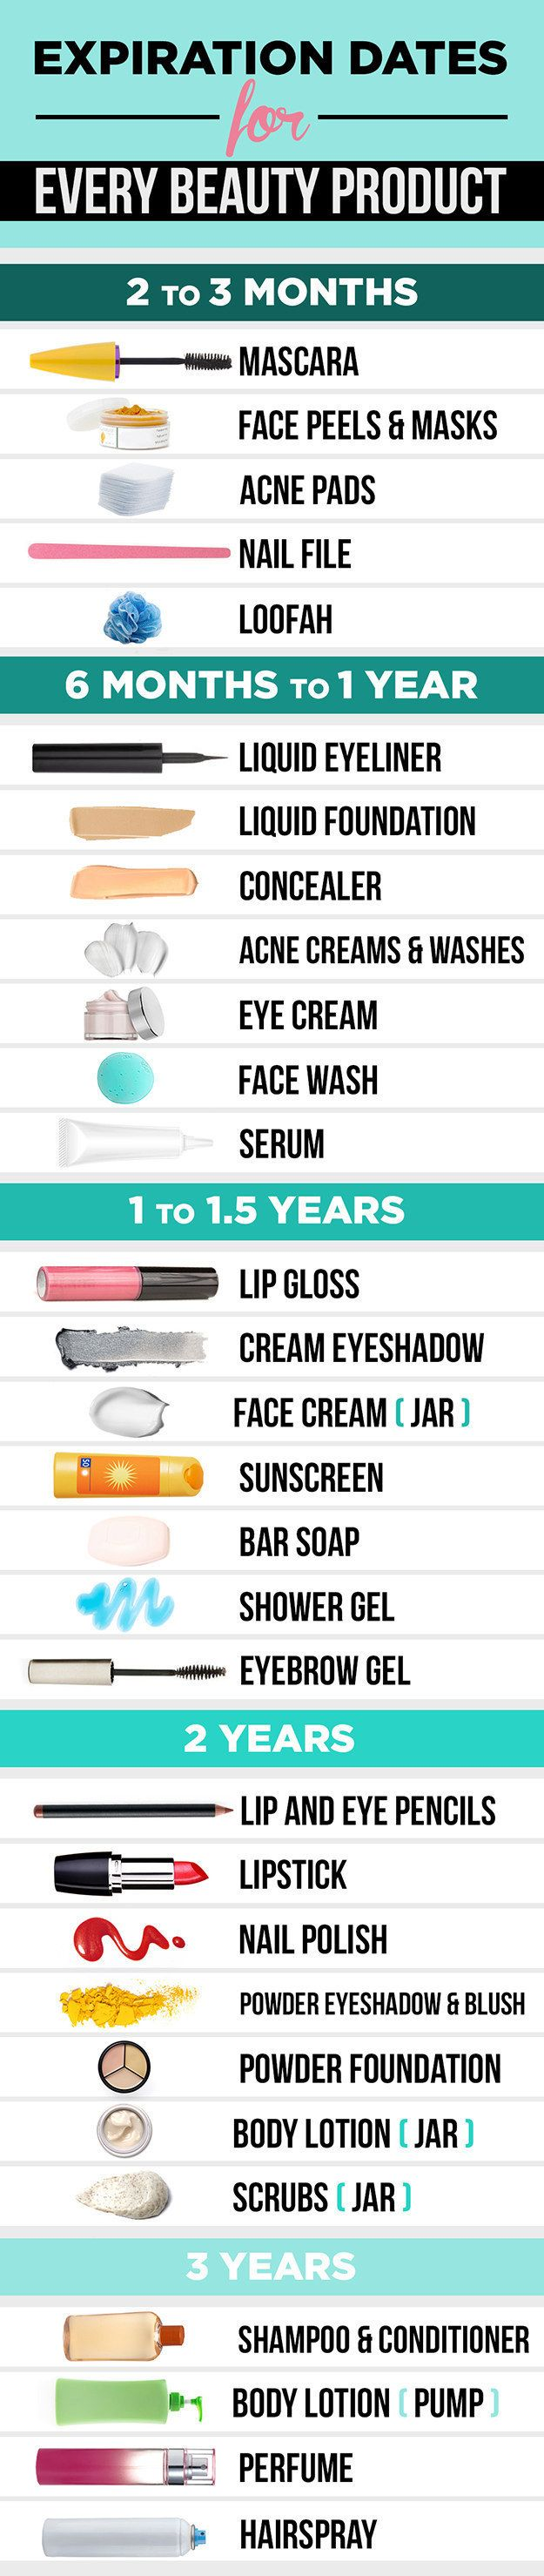 Germs multiply over time, so old makeup puts you at serious risk. | 13 Reasons Sharing Makeup Is The Worst Thing You Can Do For Your Skin